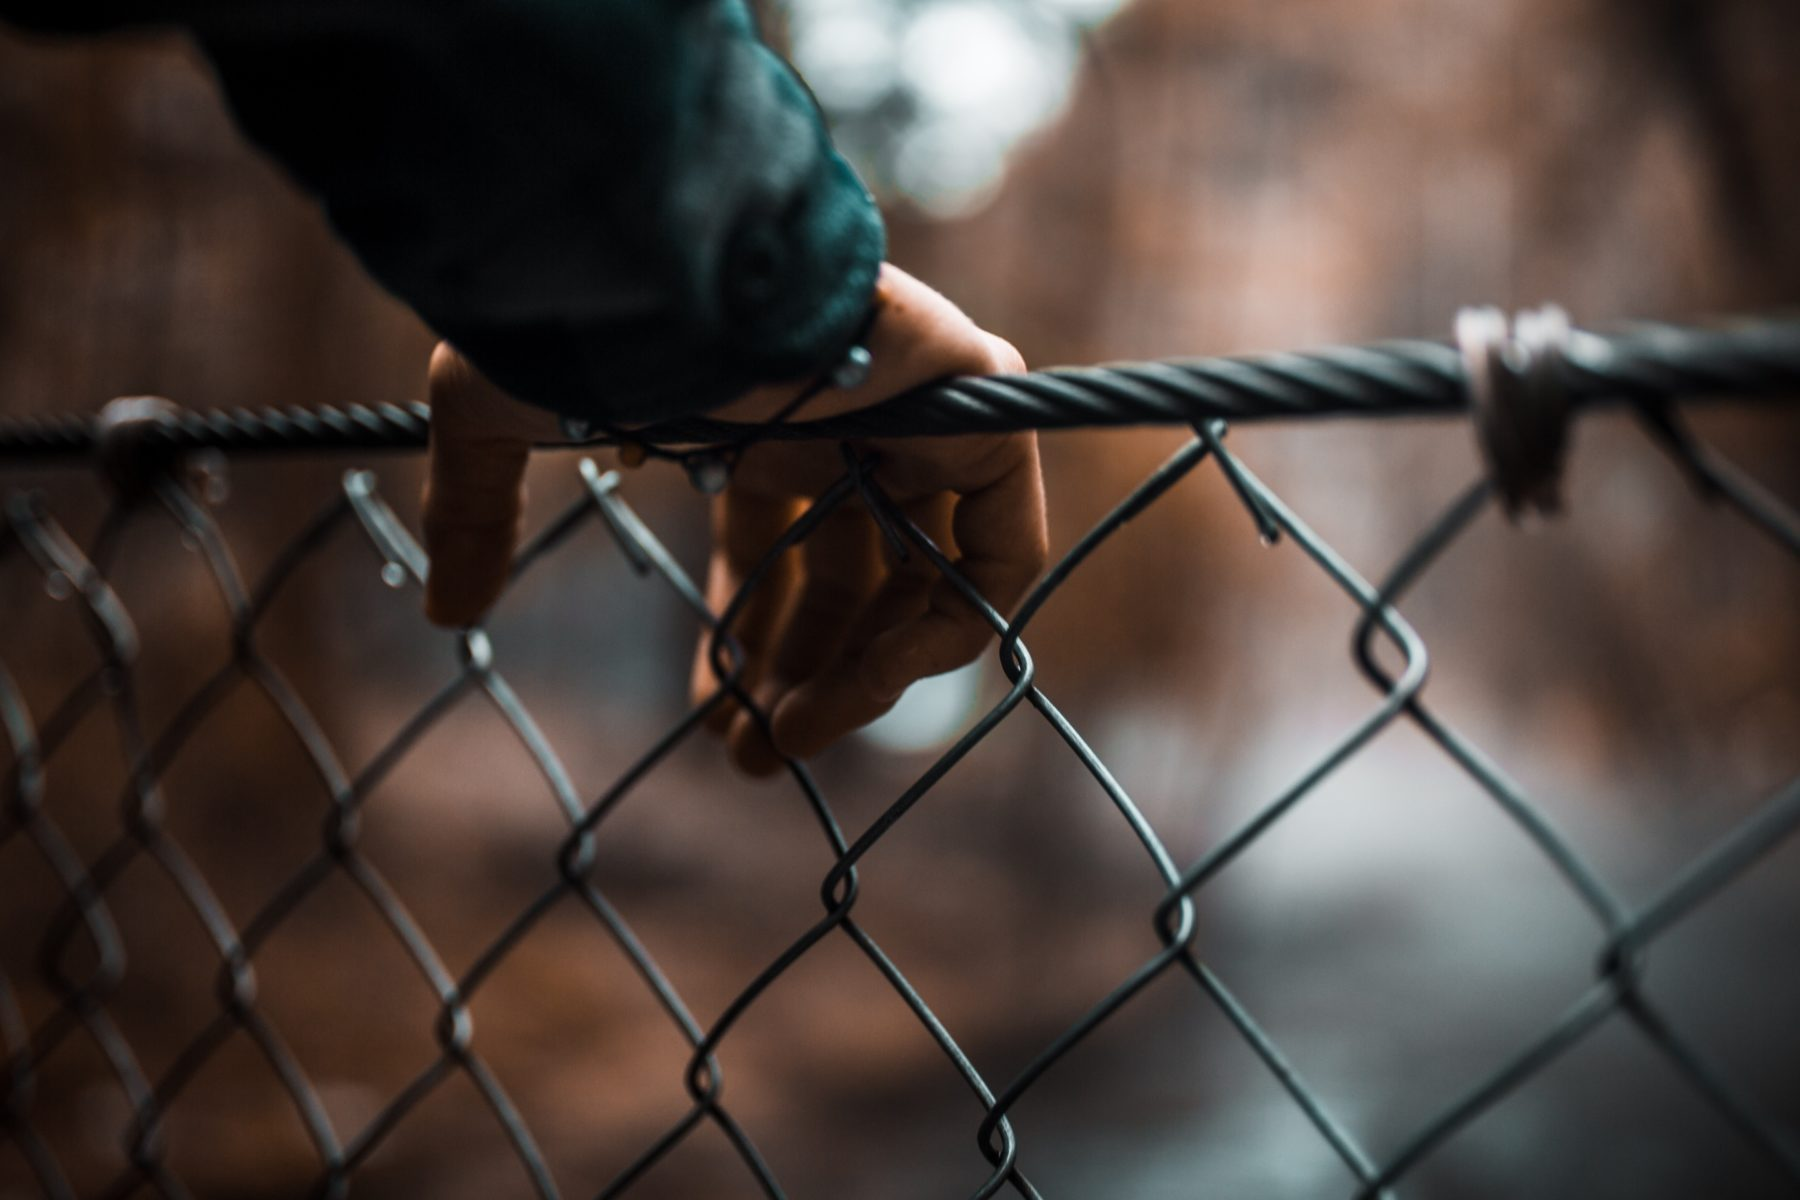 hand resting on top of a chain link fence